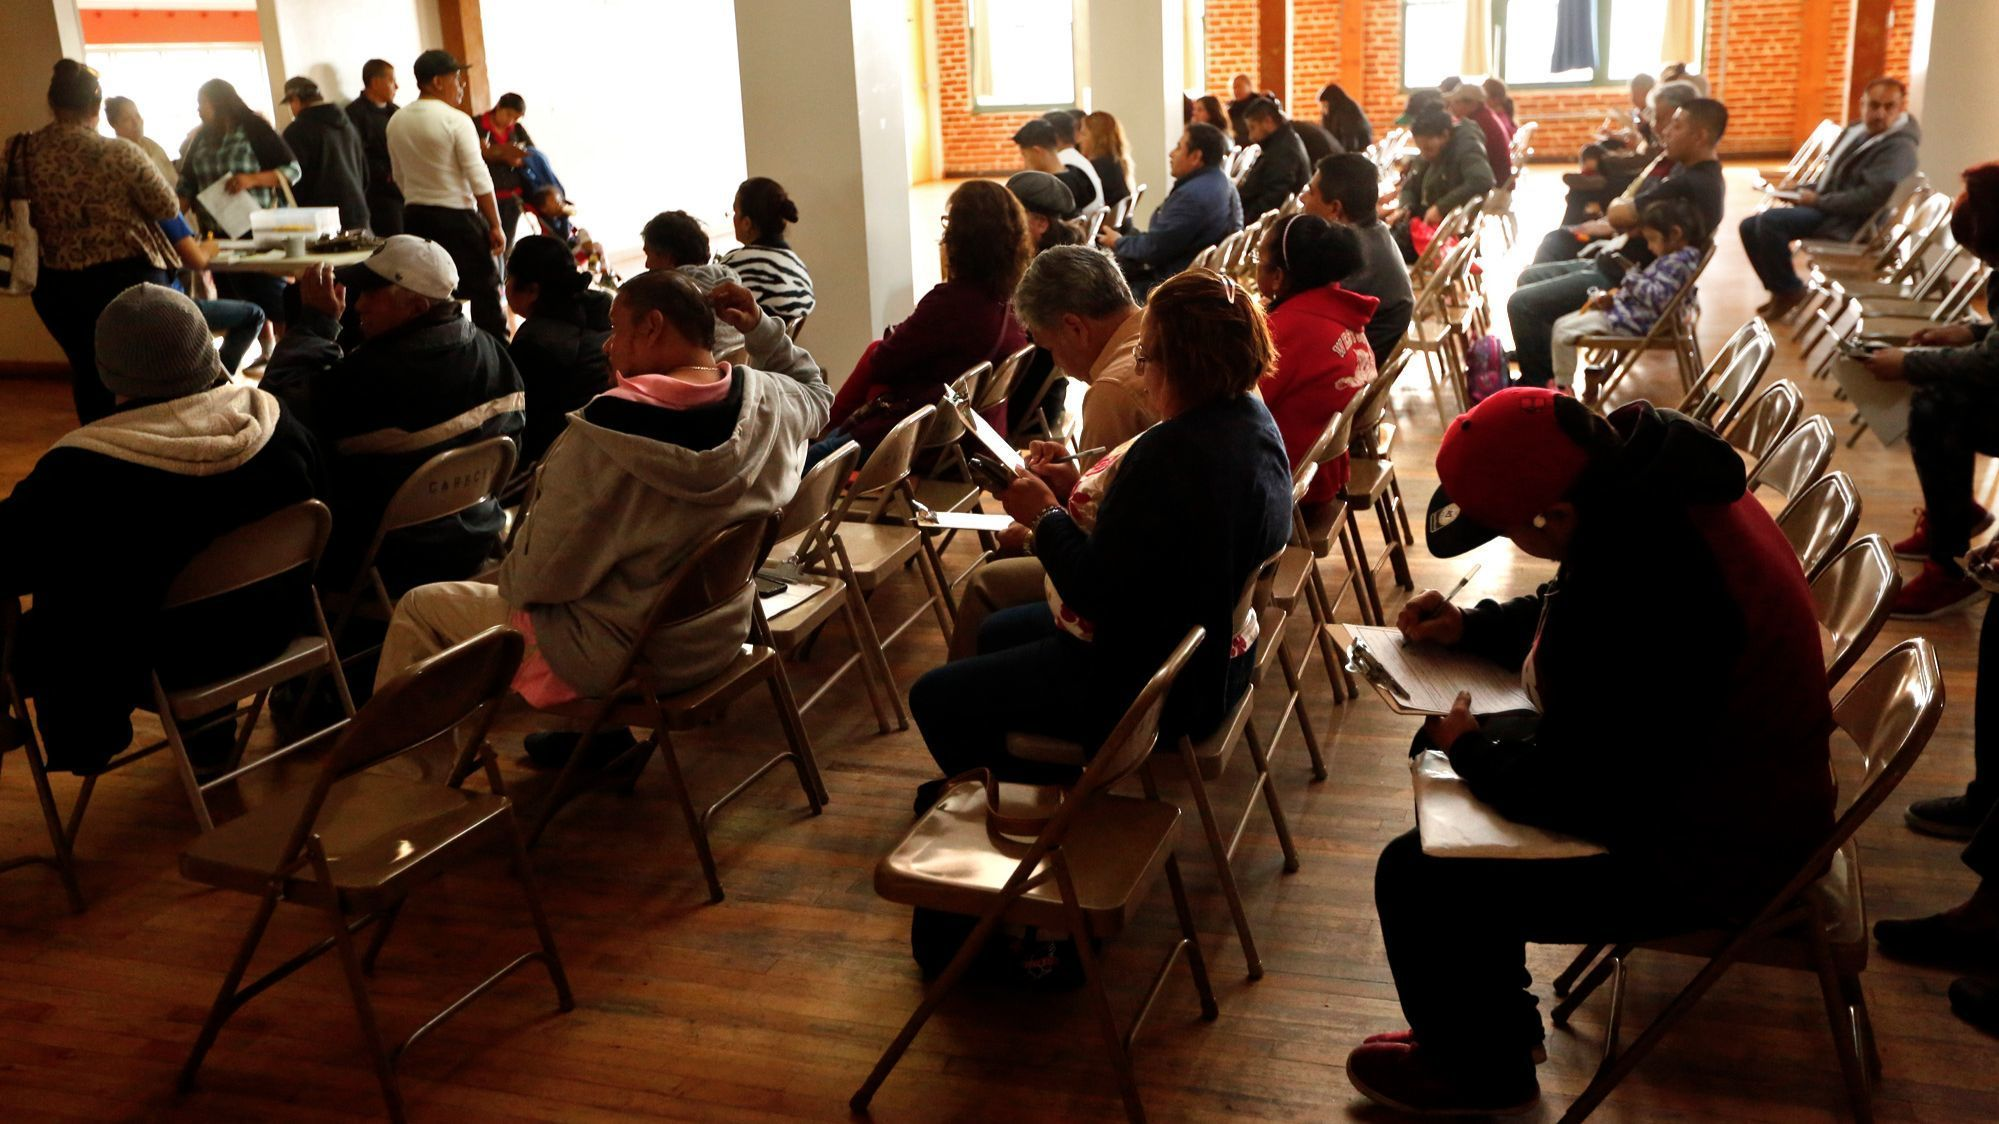 Immigrants, some in the country illegaly, fill out intake forms before receiving legal help and direction with their immigration cases on consultation day at the Central American Resource Center.